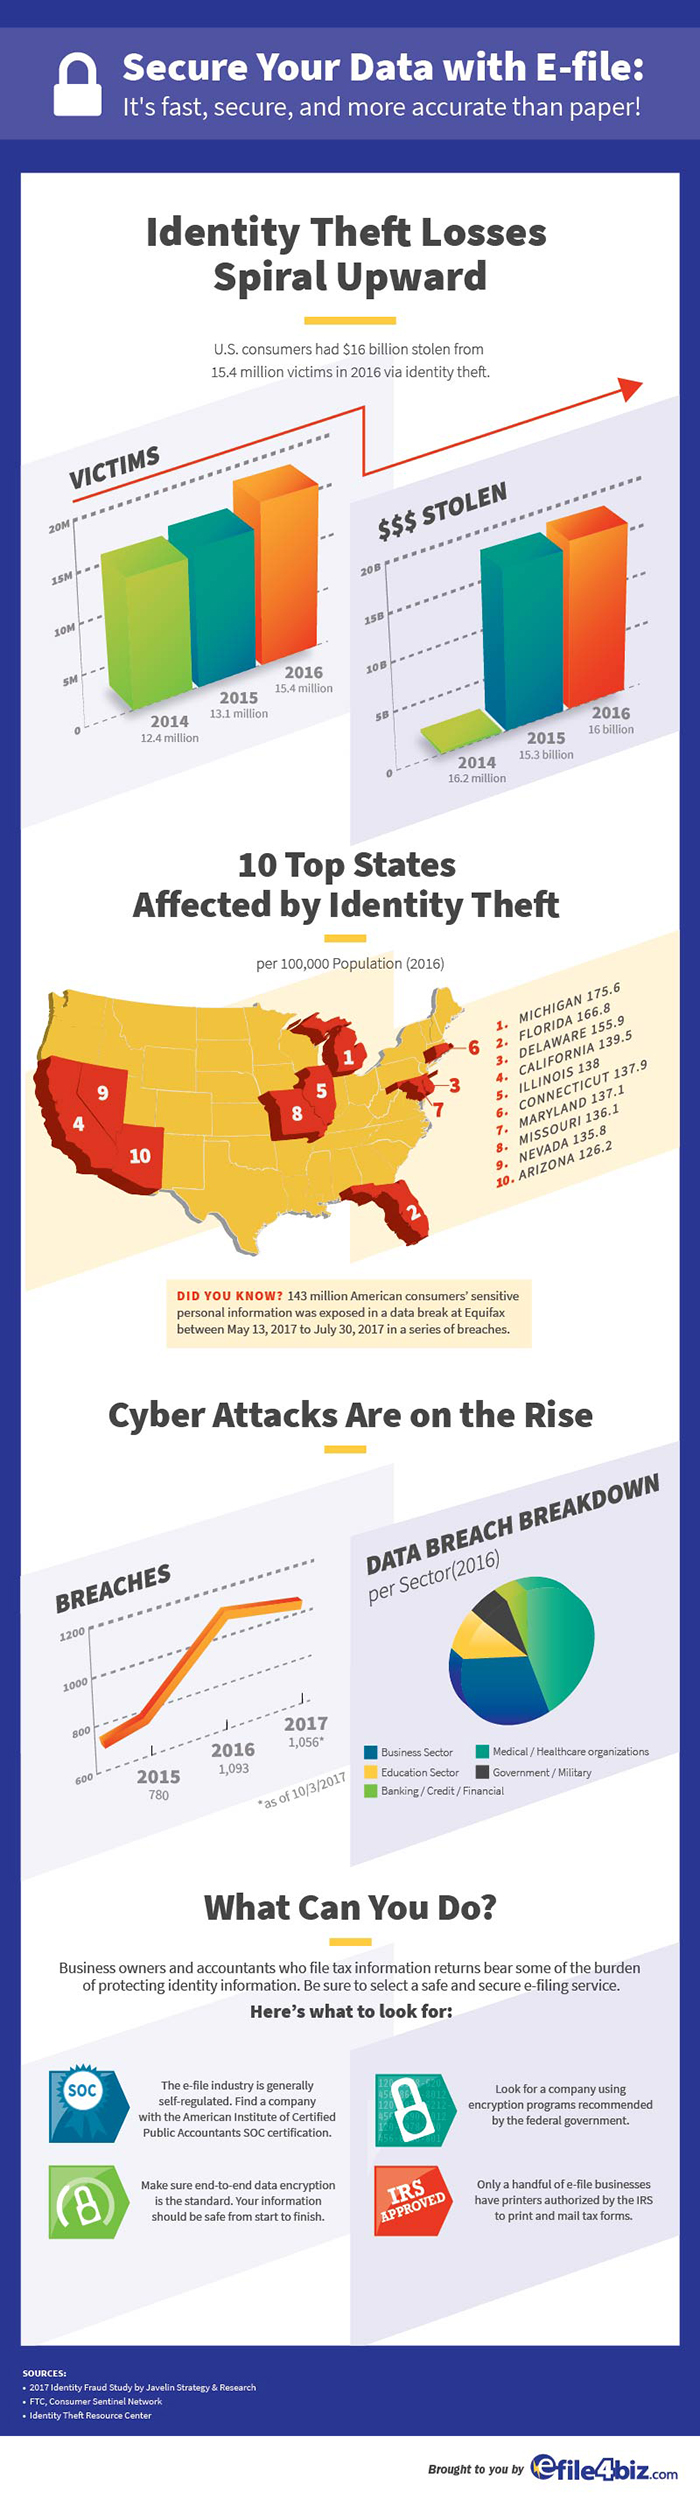 E-file Security and Safety Infographic